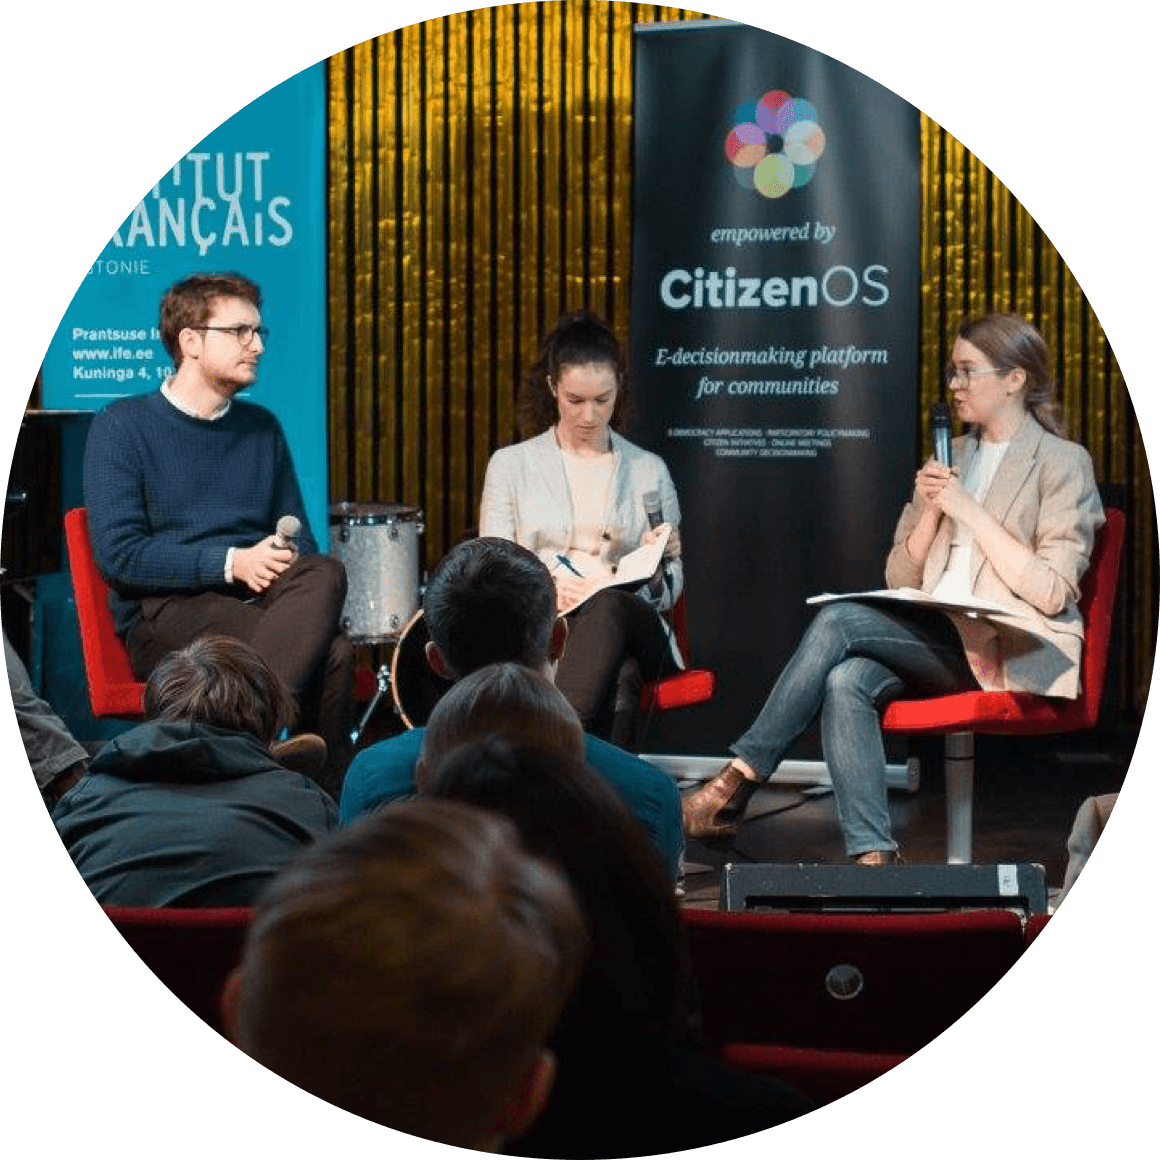 Citizen OS's first COSCON conference, which brought together e-democracy researchers from around the world.